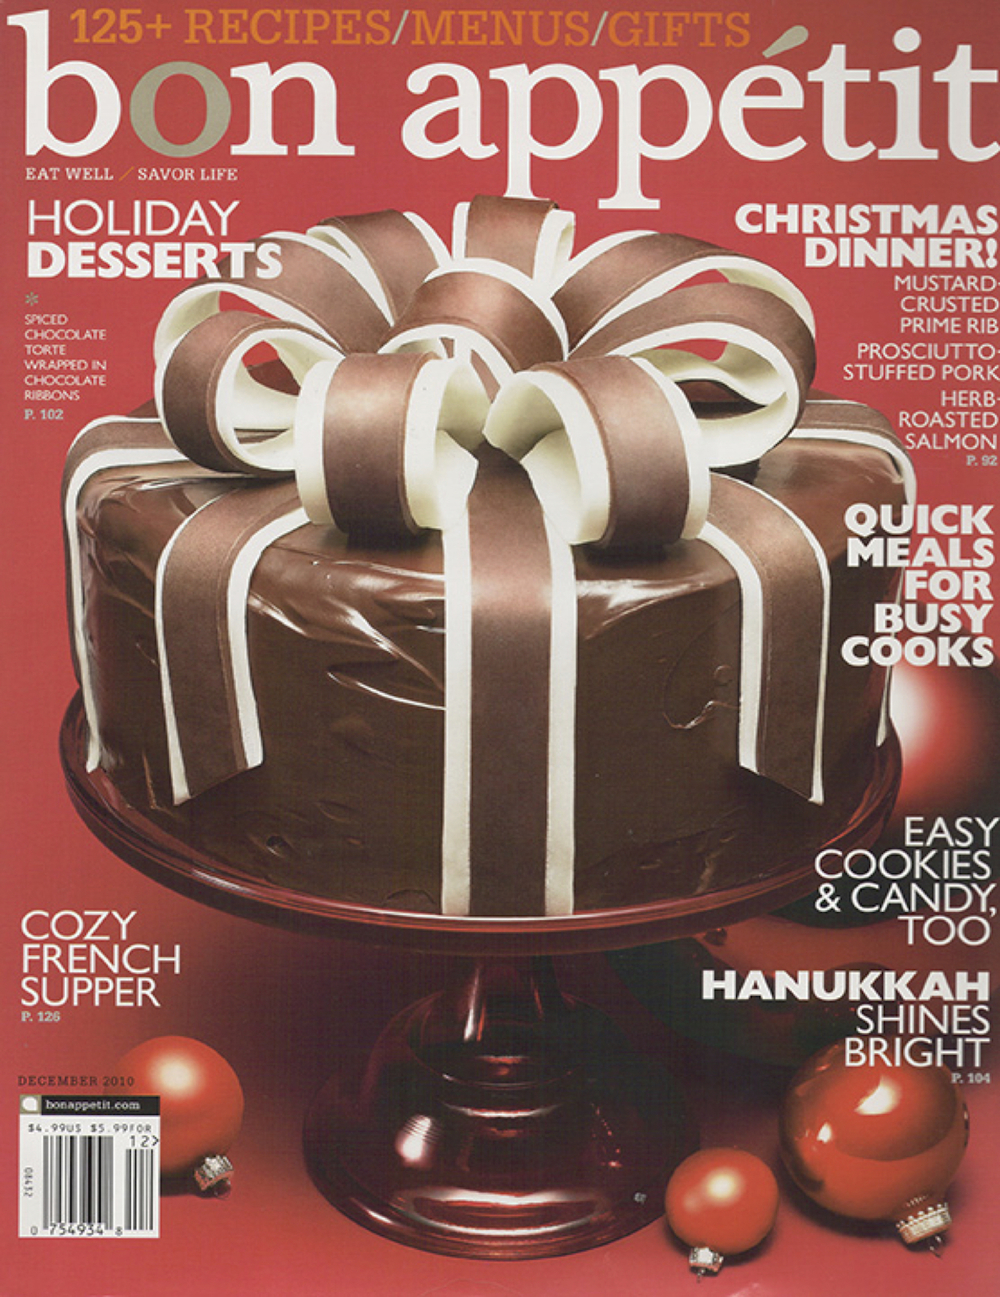 bon_appetit_dec_10_cover copy 2.jpg